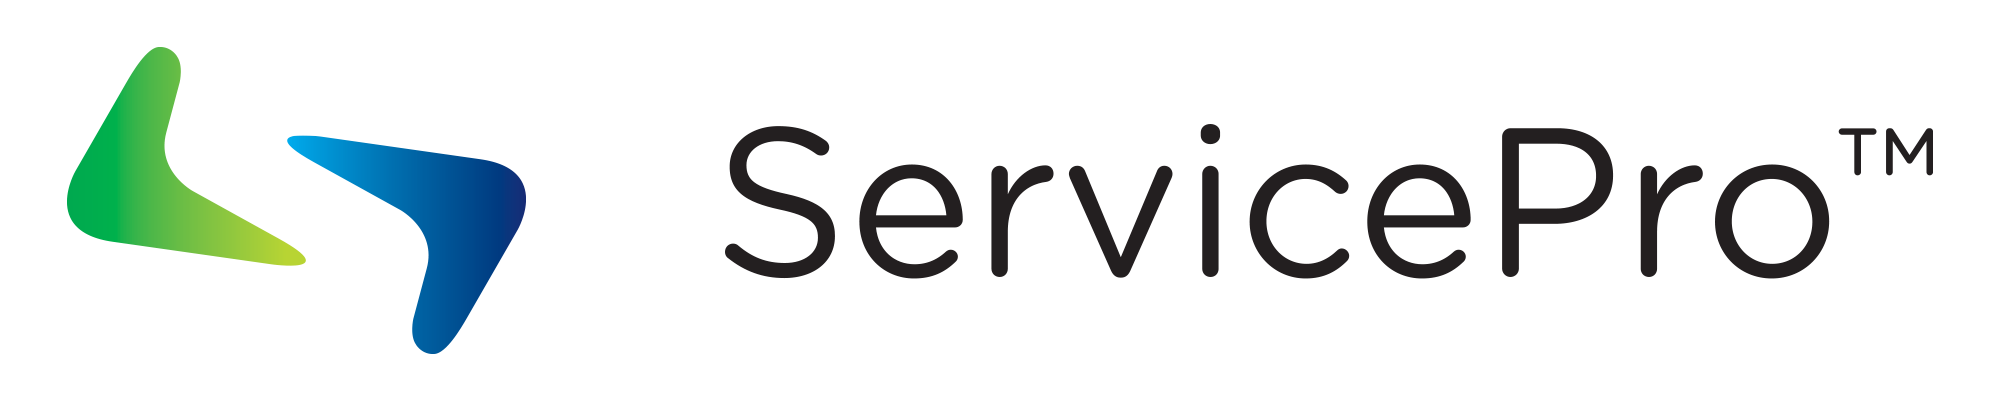 servicepro 2 cropped